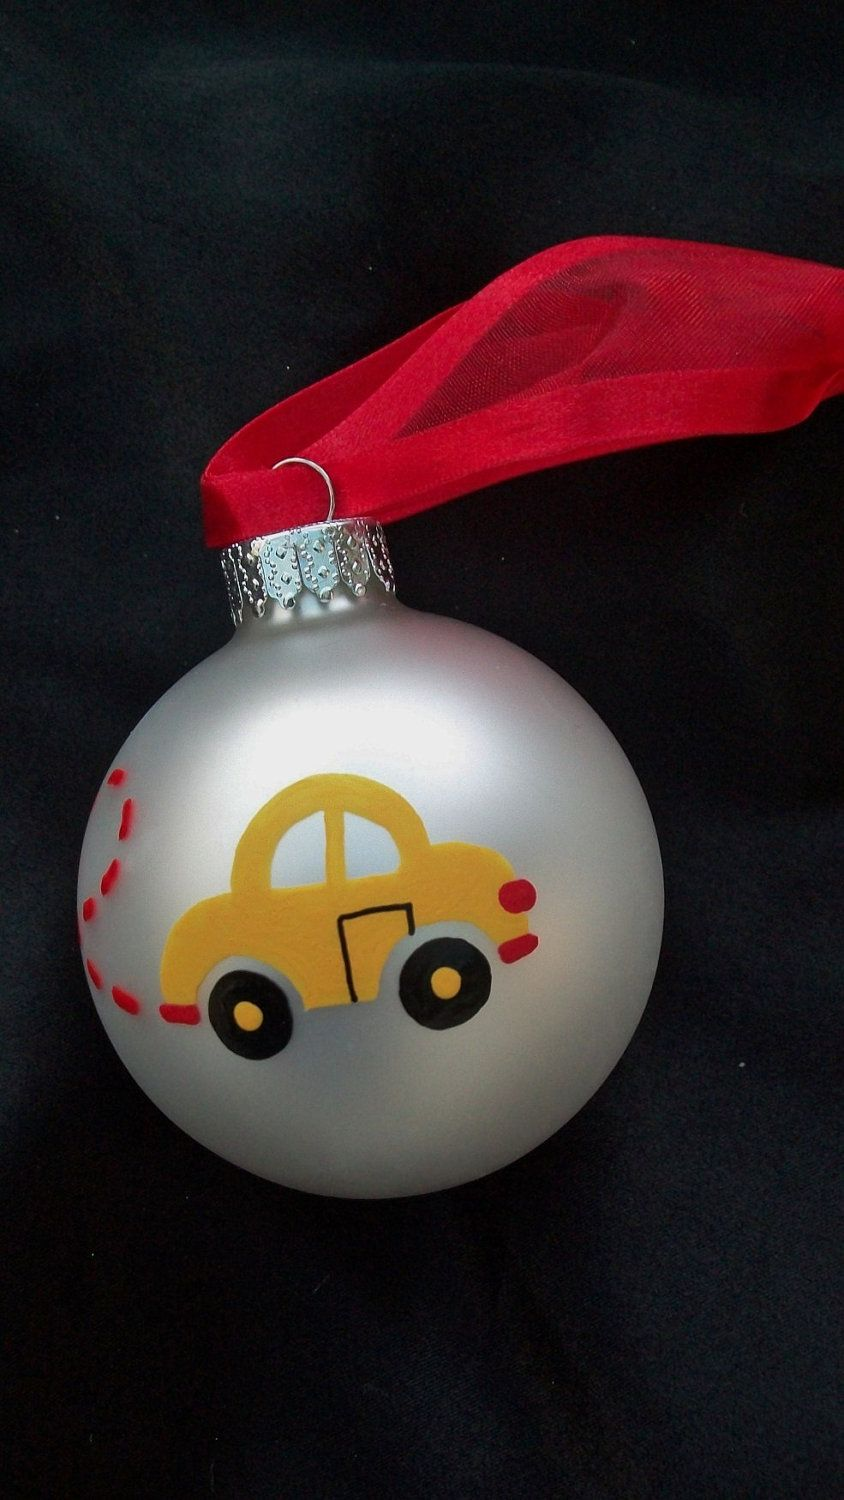 Graduation christmas ornament - Vw Beetle Personalized Christmas Ornament Hand Painted Yellow Car Ornament First Car New Driver Graduation Going To College Car Lover